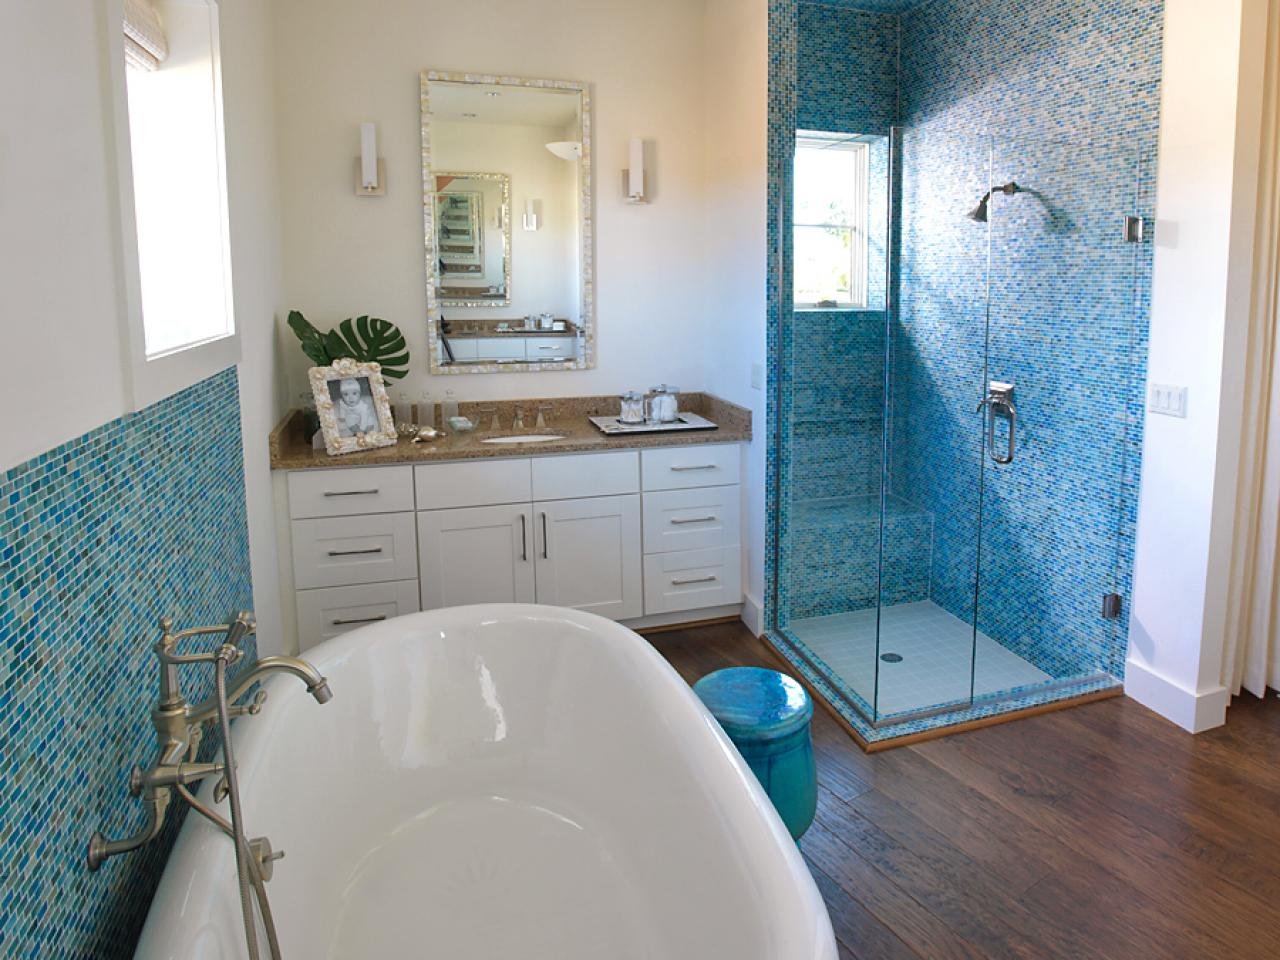 Best of designers 39 portfolio bathrooms bathroom ideas for Hgtv small bathroom design ideas